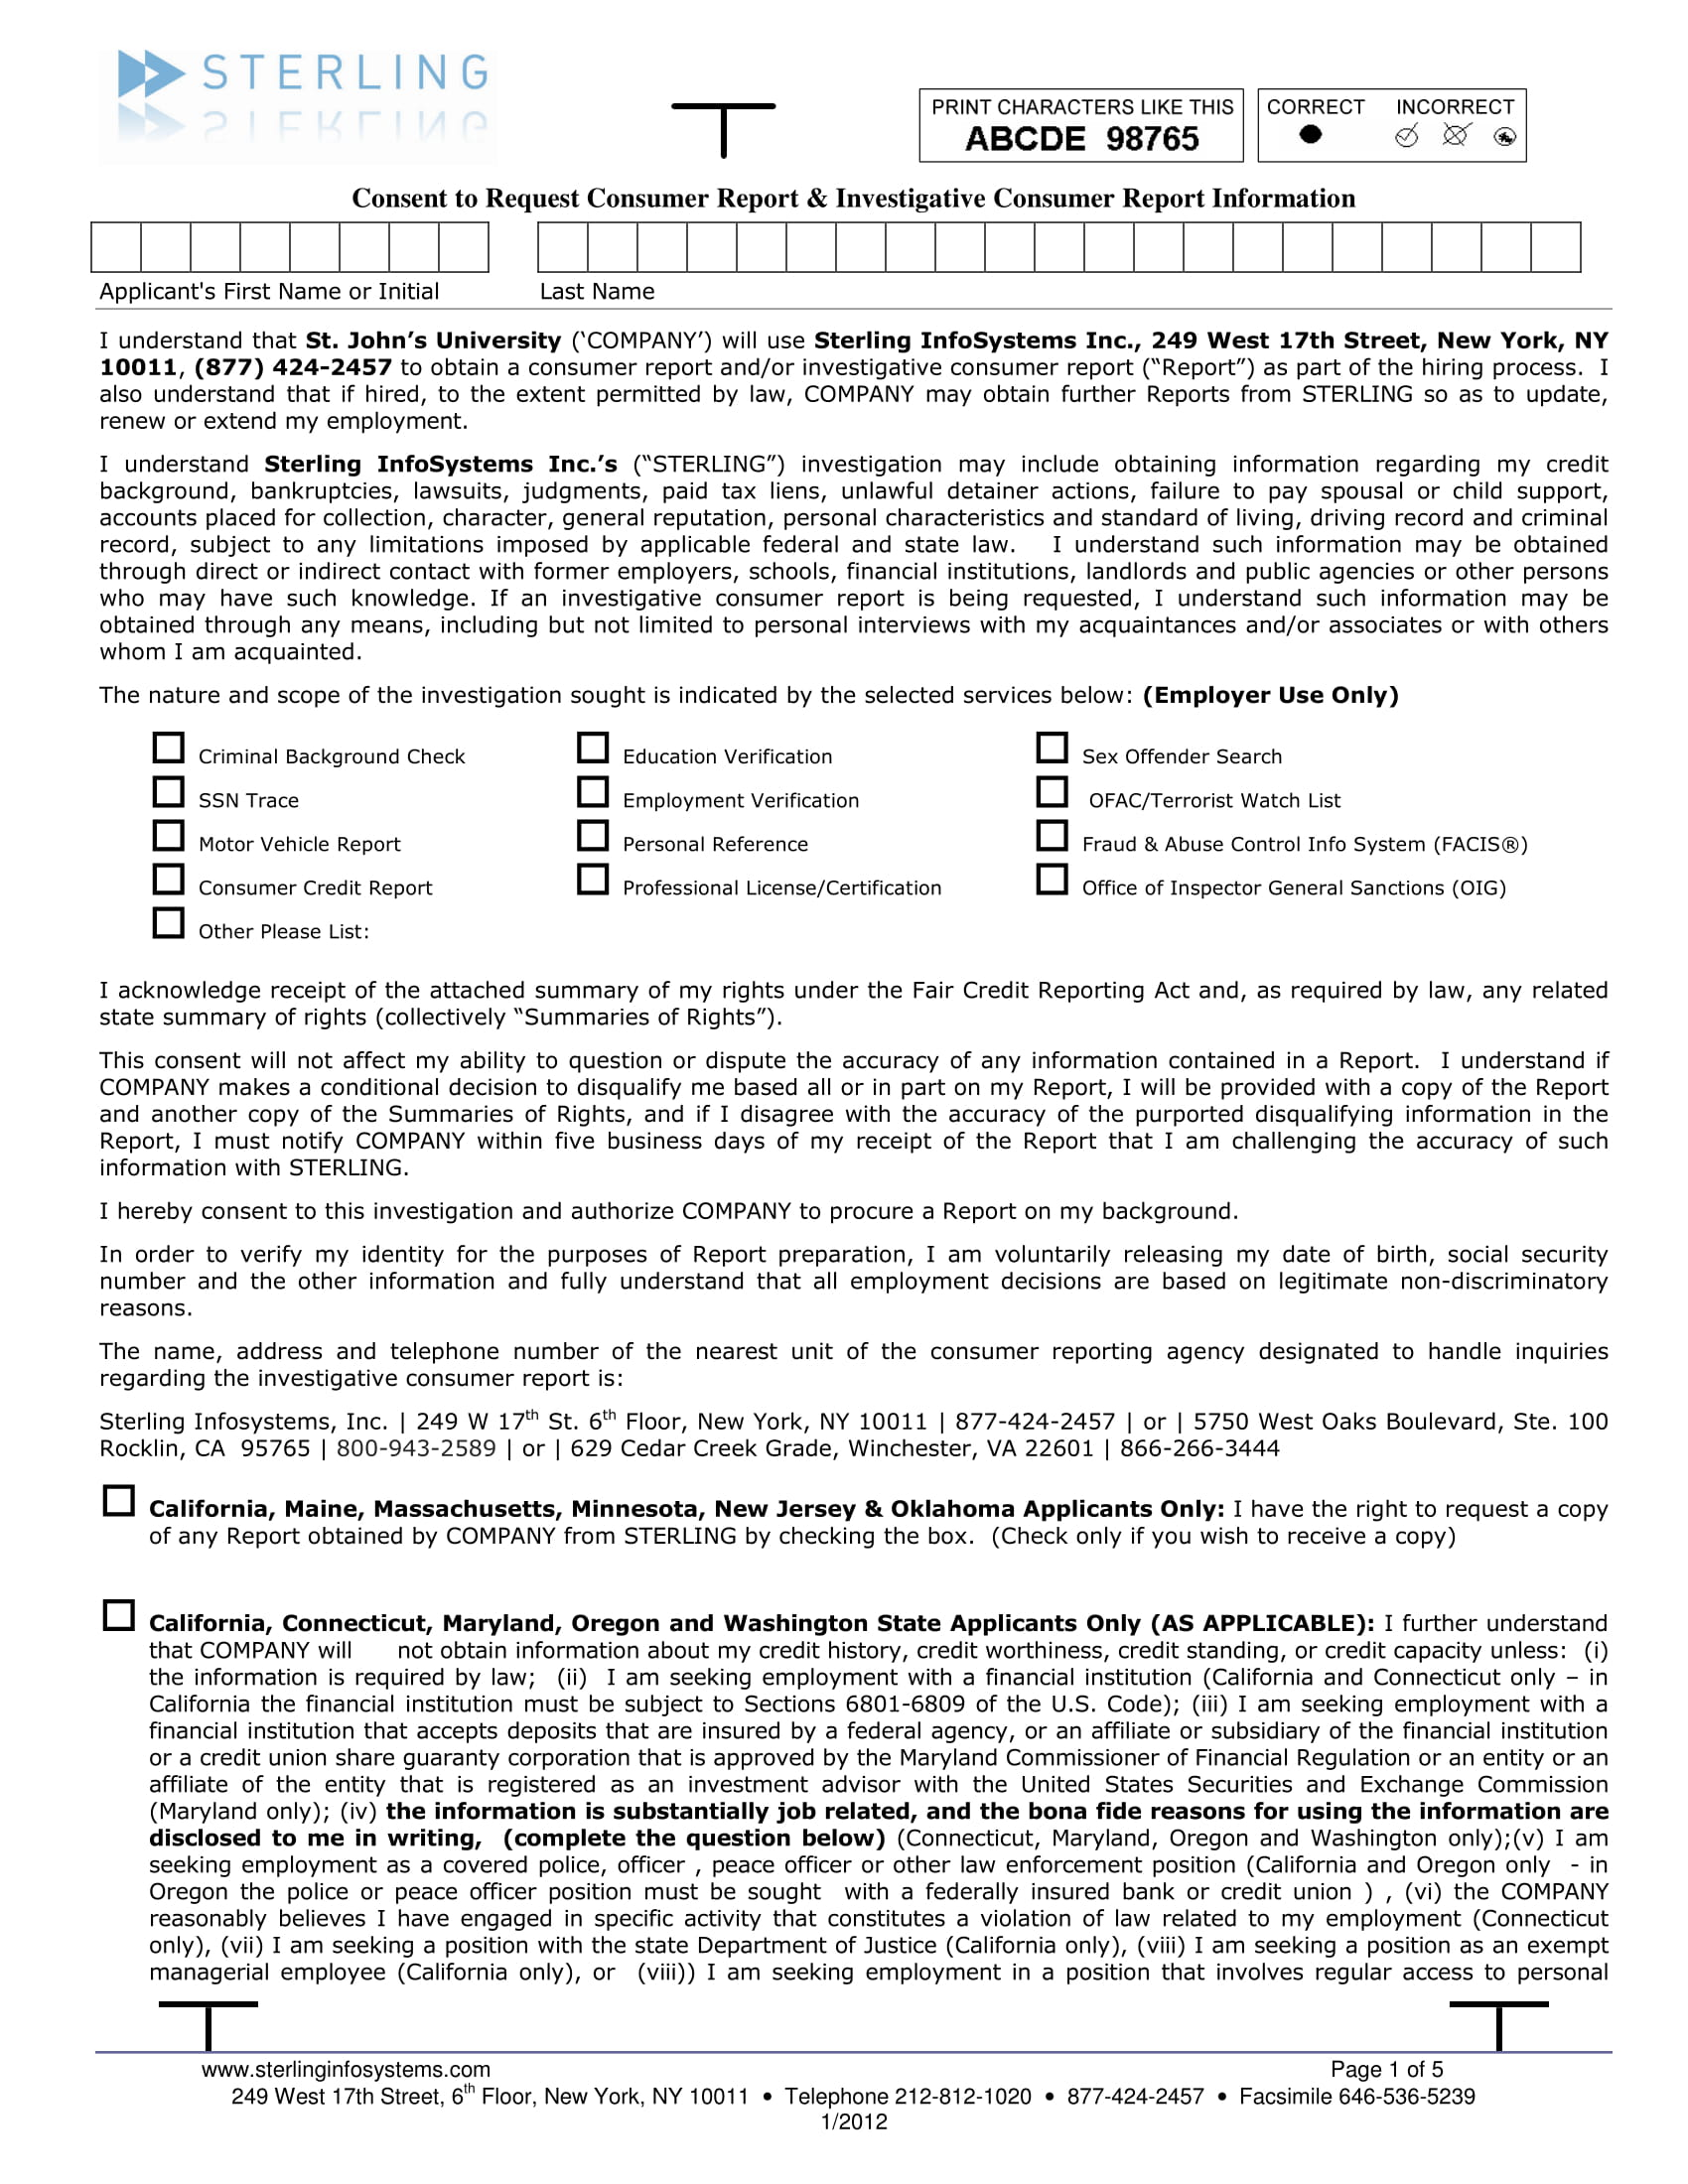 background check investigation form